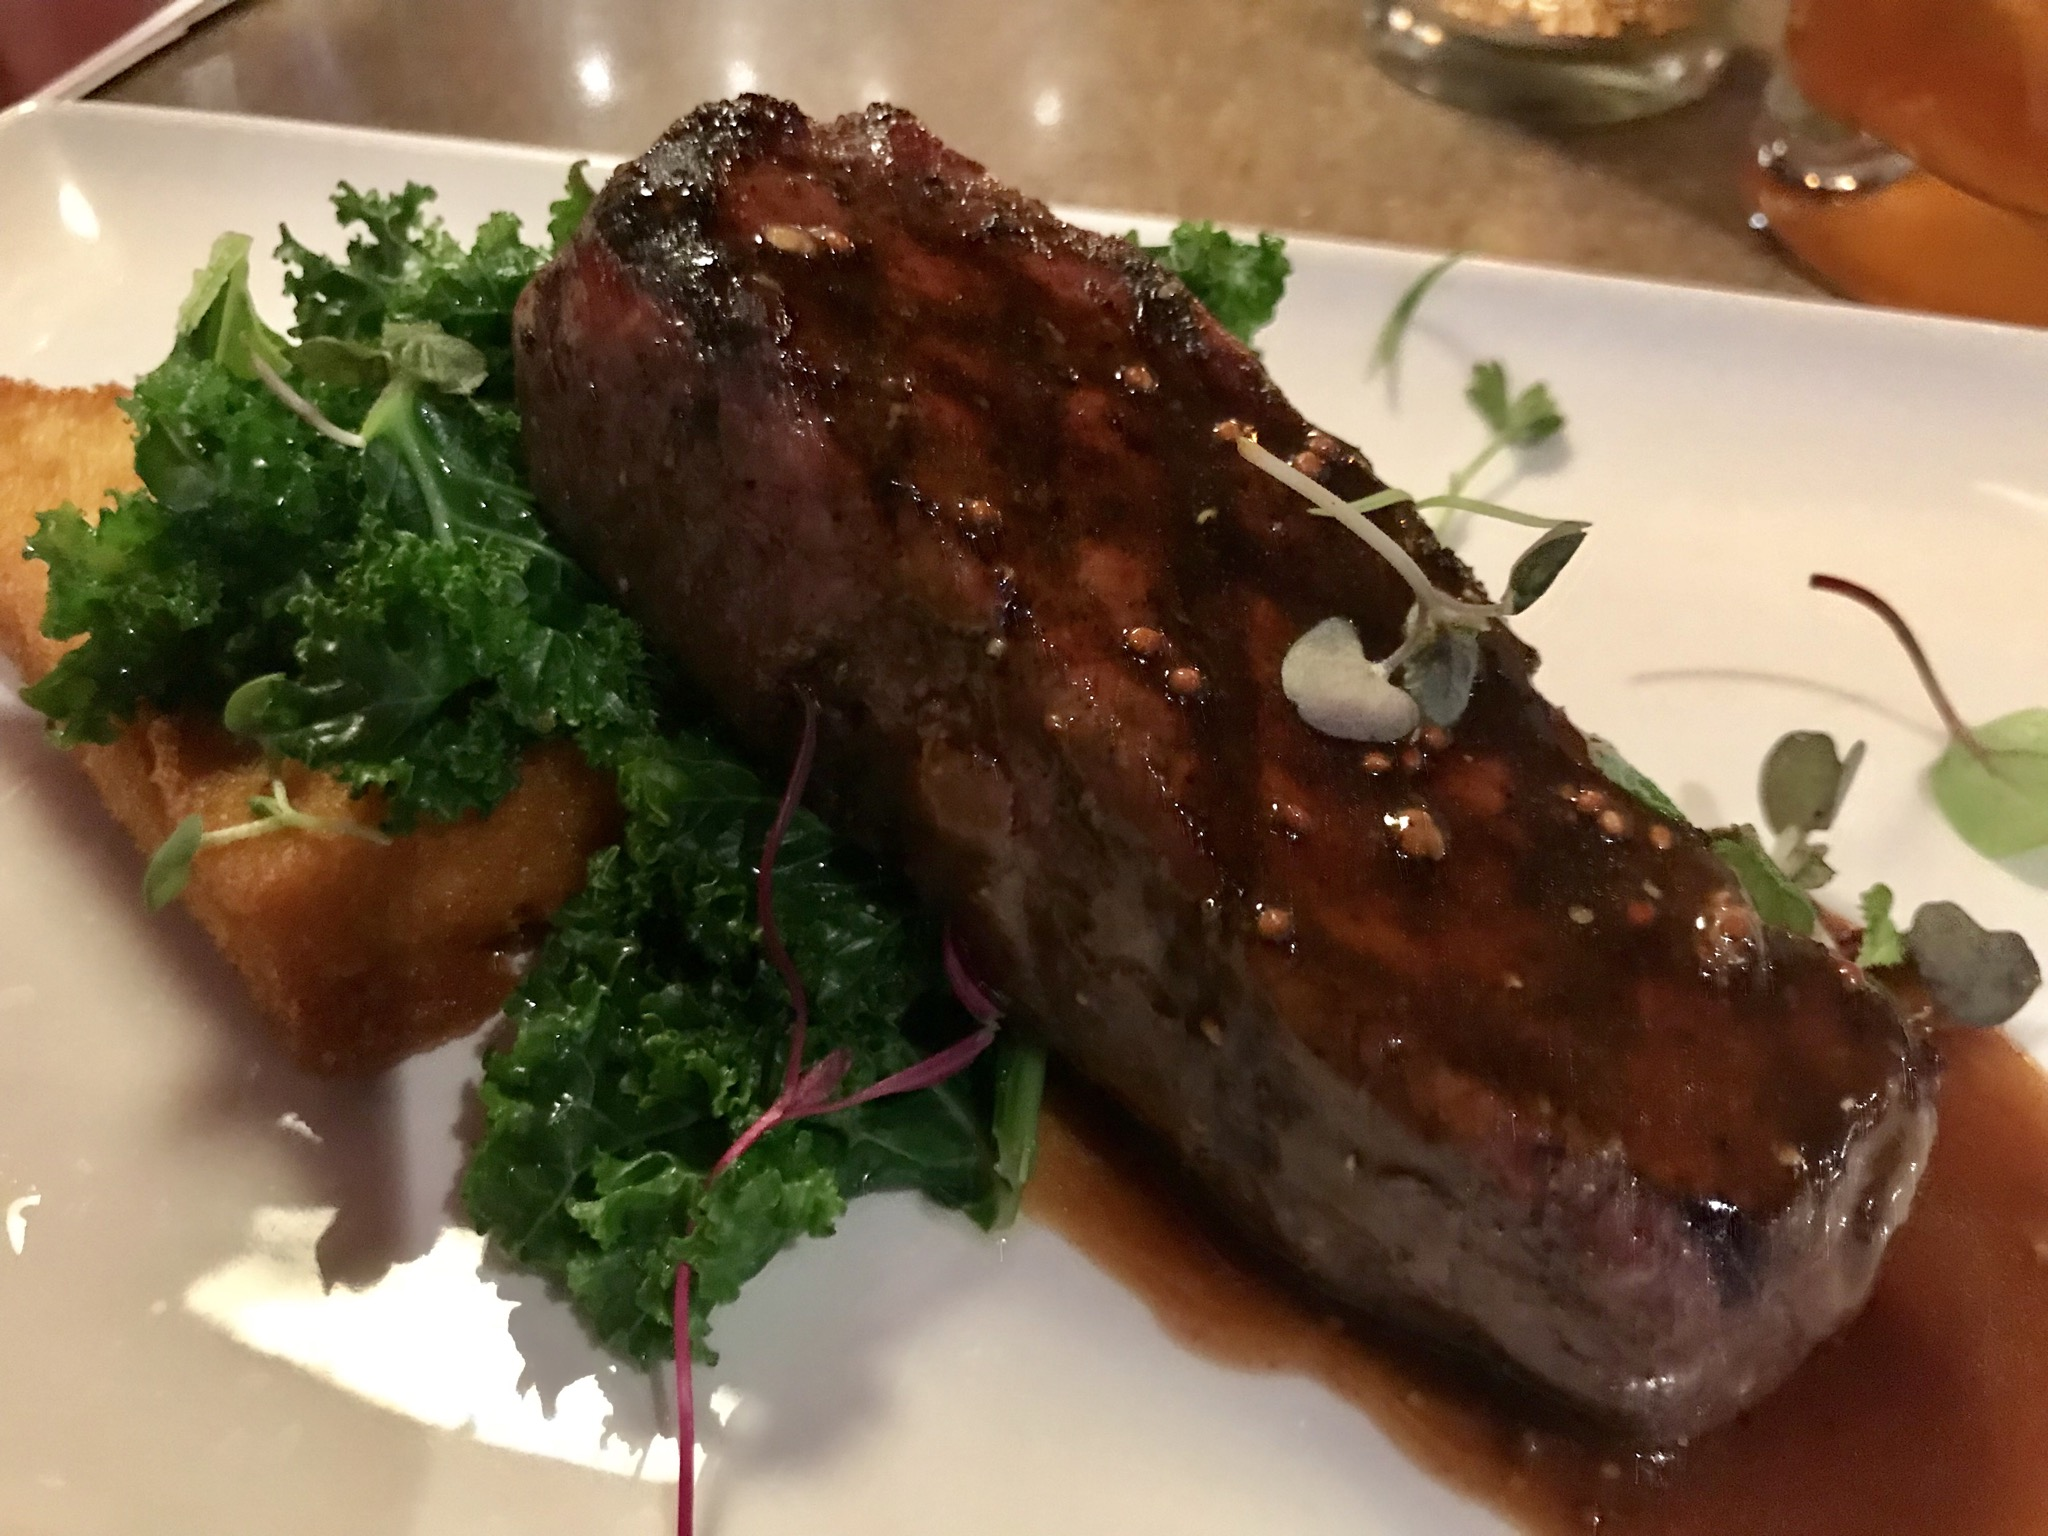 A Bison New York Strip & Delicious Scallops at Tagris – March 30 2018